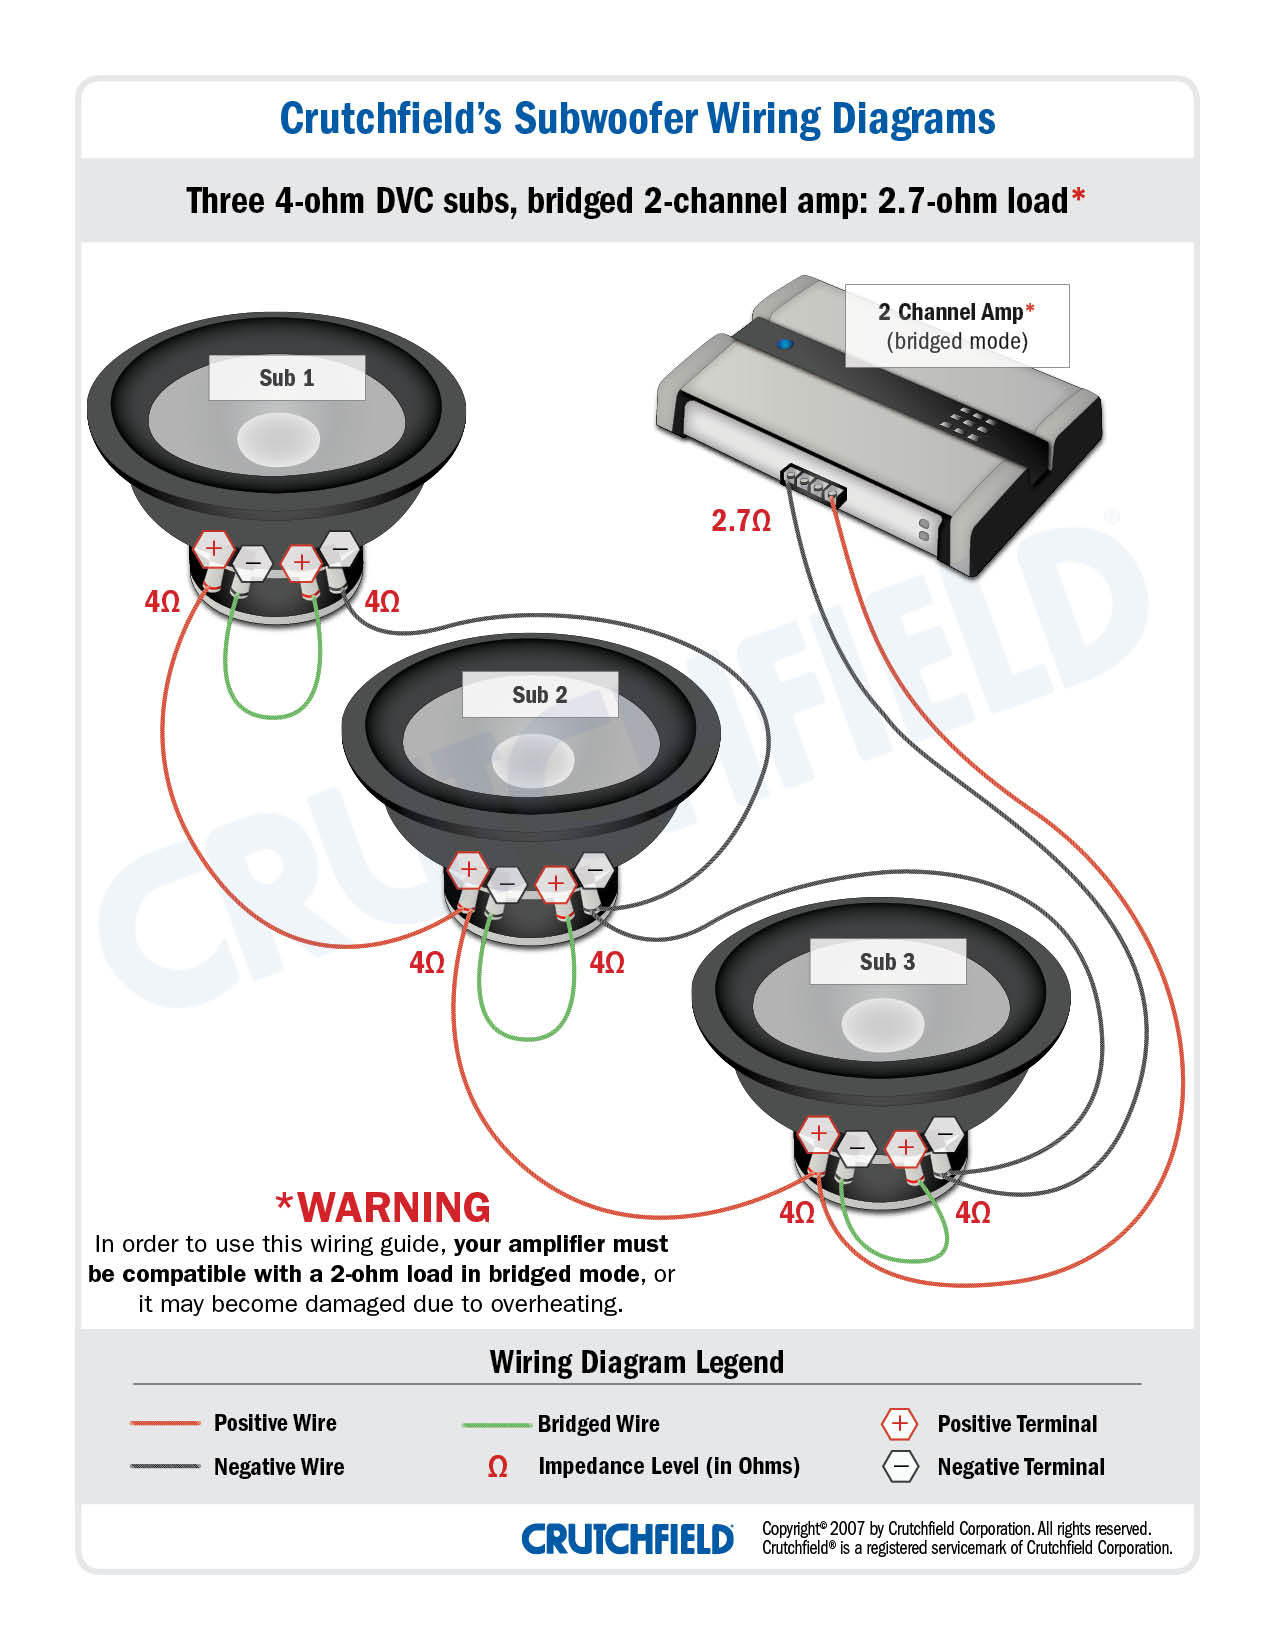 subwoofer wiring diagrams rh crutchfield com sub wiring diagram for 2016 ram 1500 sub wiring diagram for 2016 ram 1500